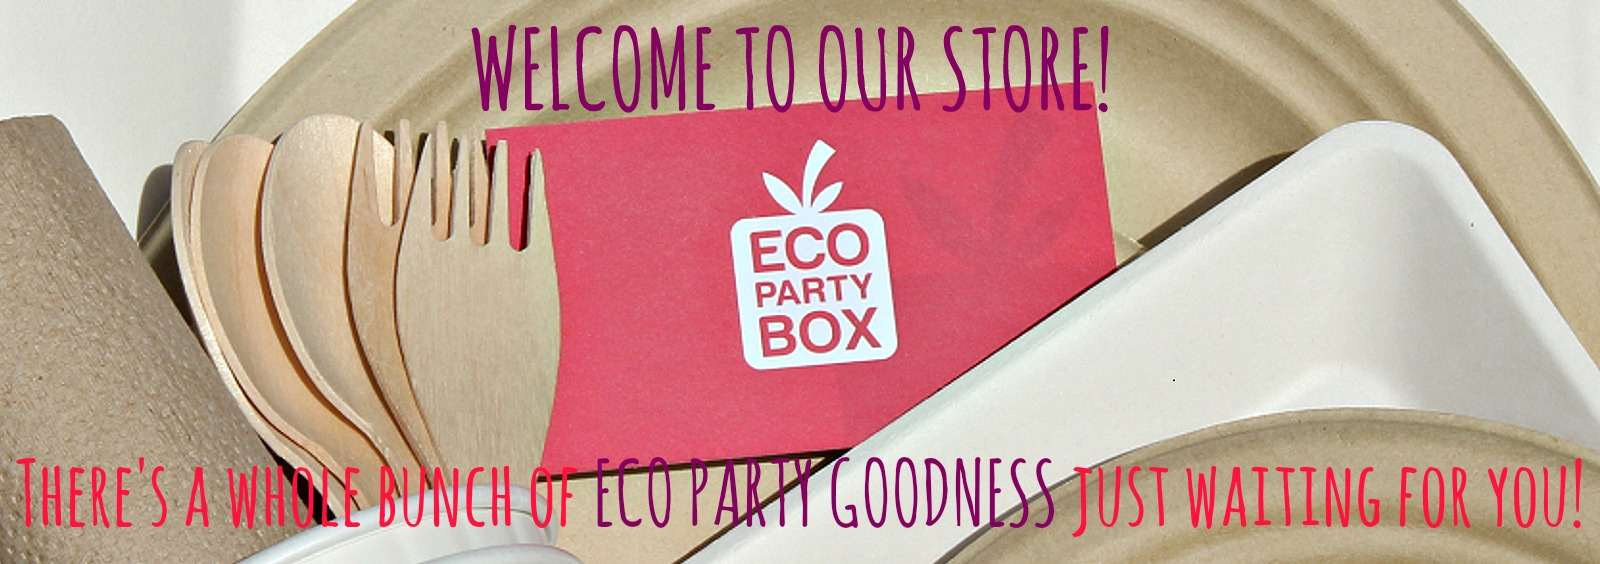 Welcome to Eco Party Box